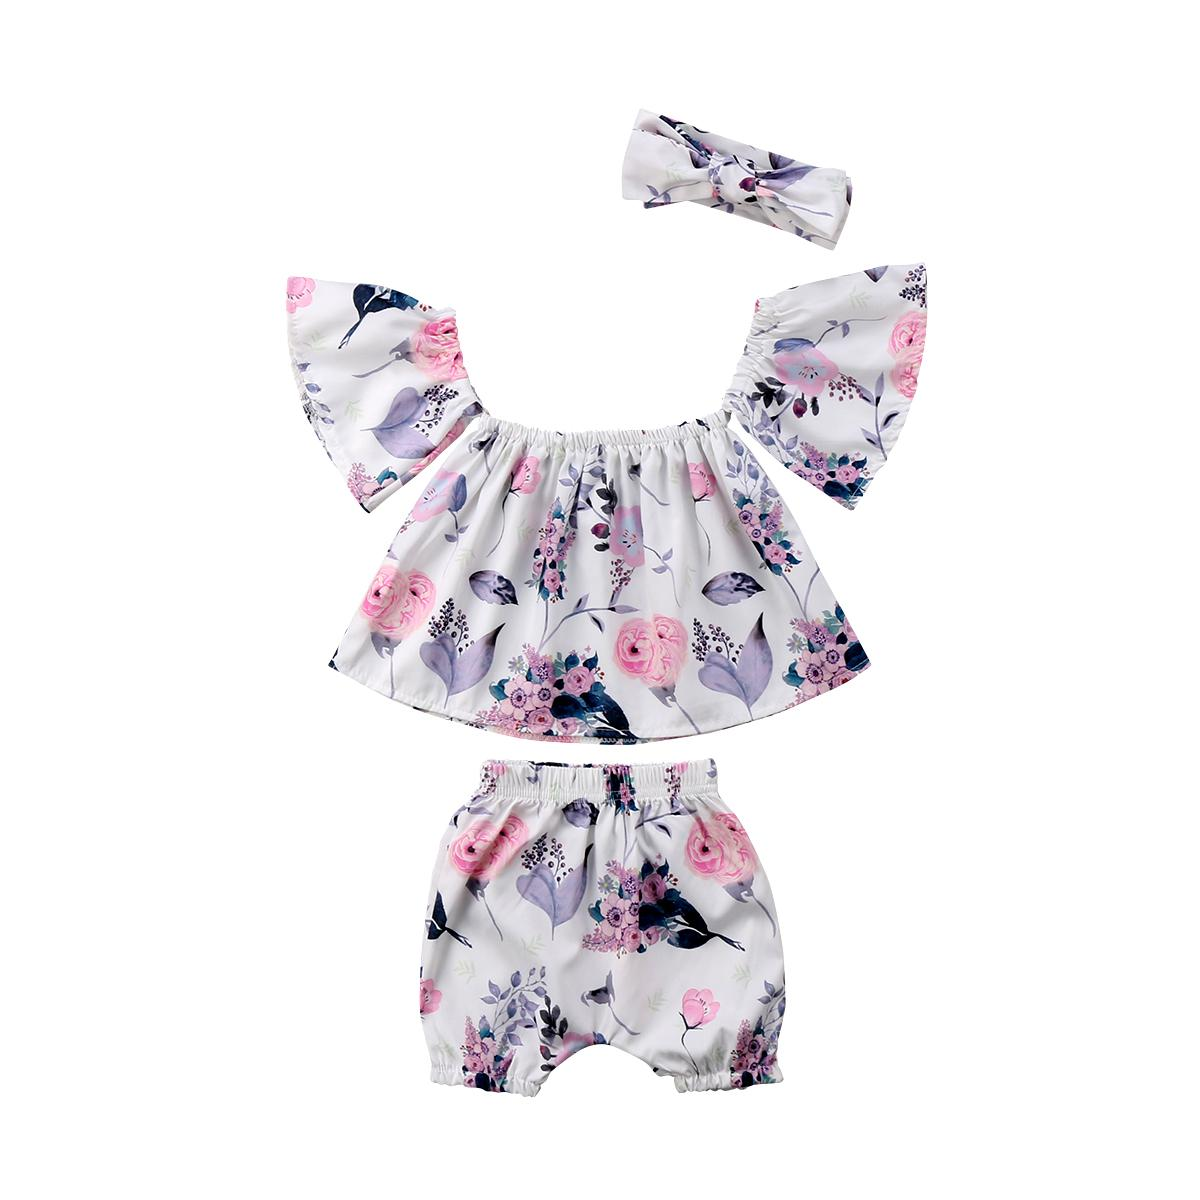 519022c07d3 2019 Newborn Baby Girl Flower Off Shoulder Top Shorts T Shirt Ruffles Bow  Knot Print Shorts Outfit Set Clothes From Orchidor